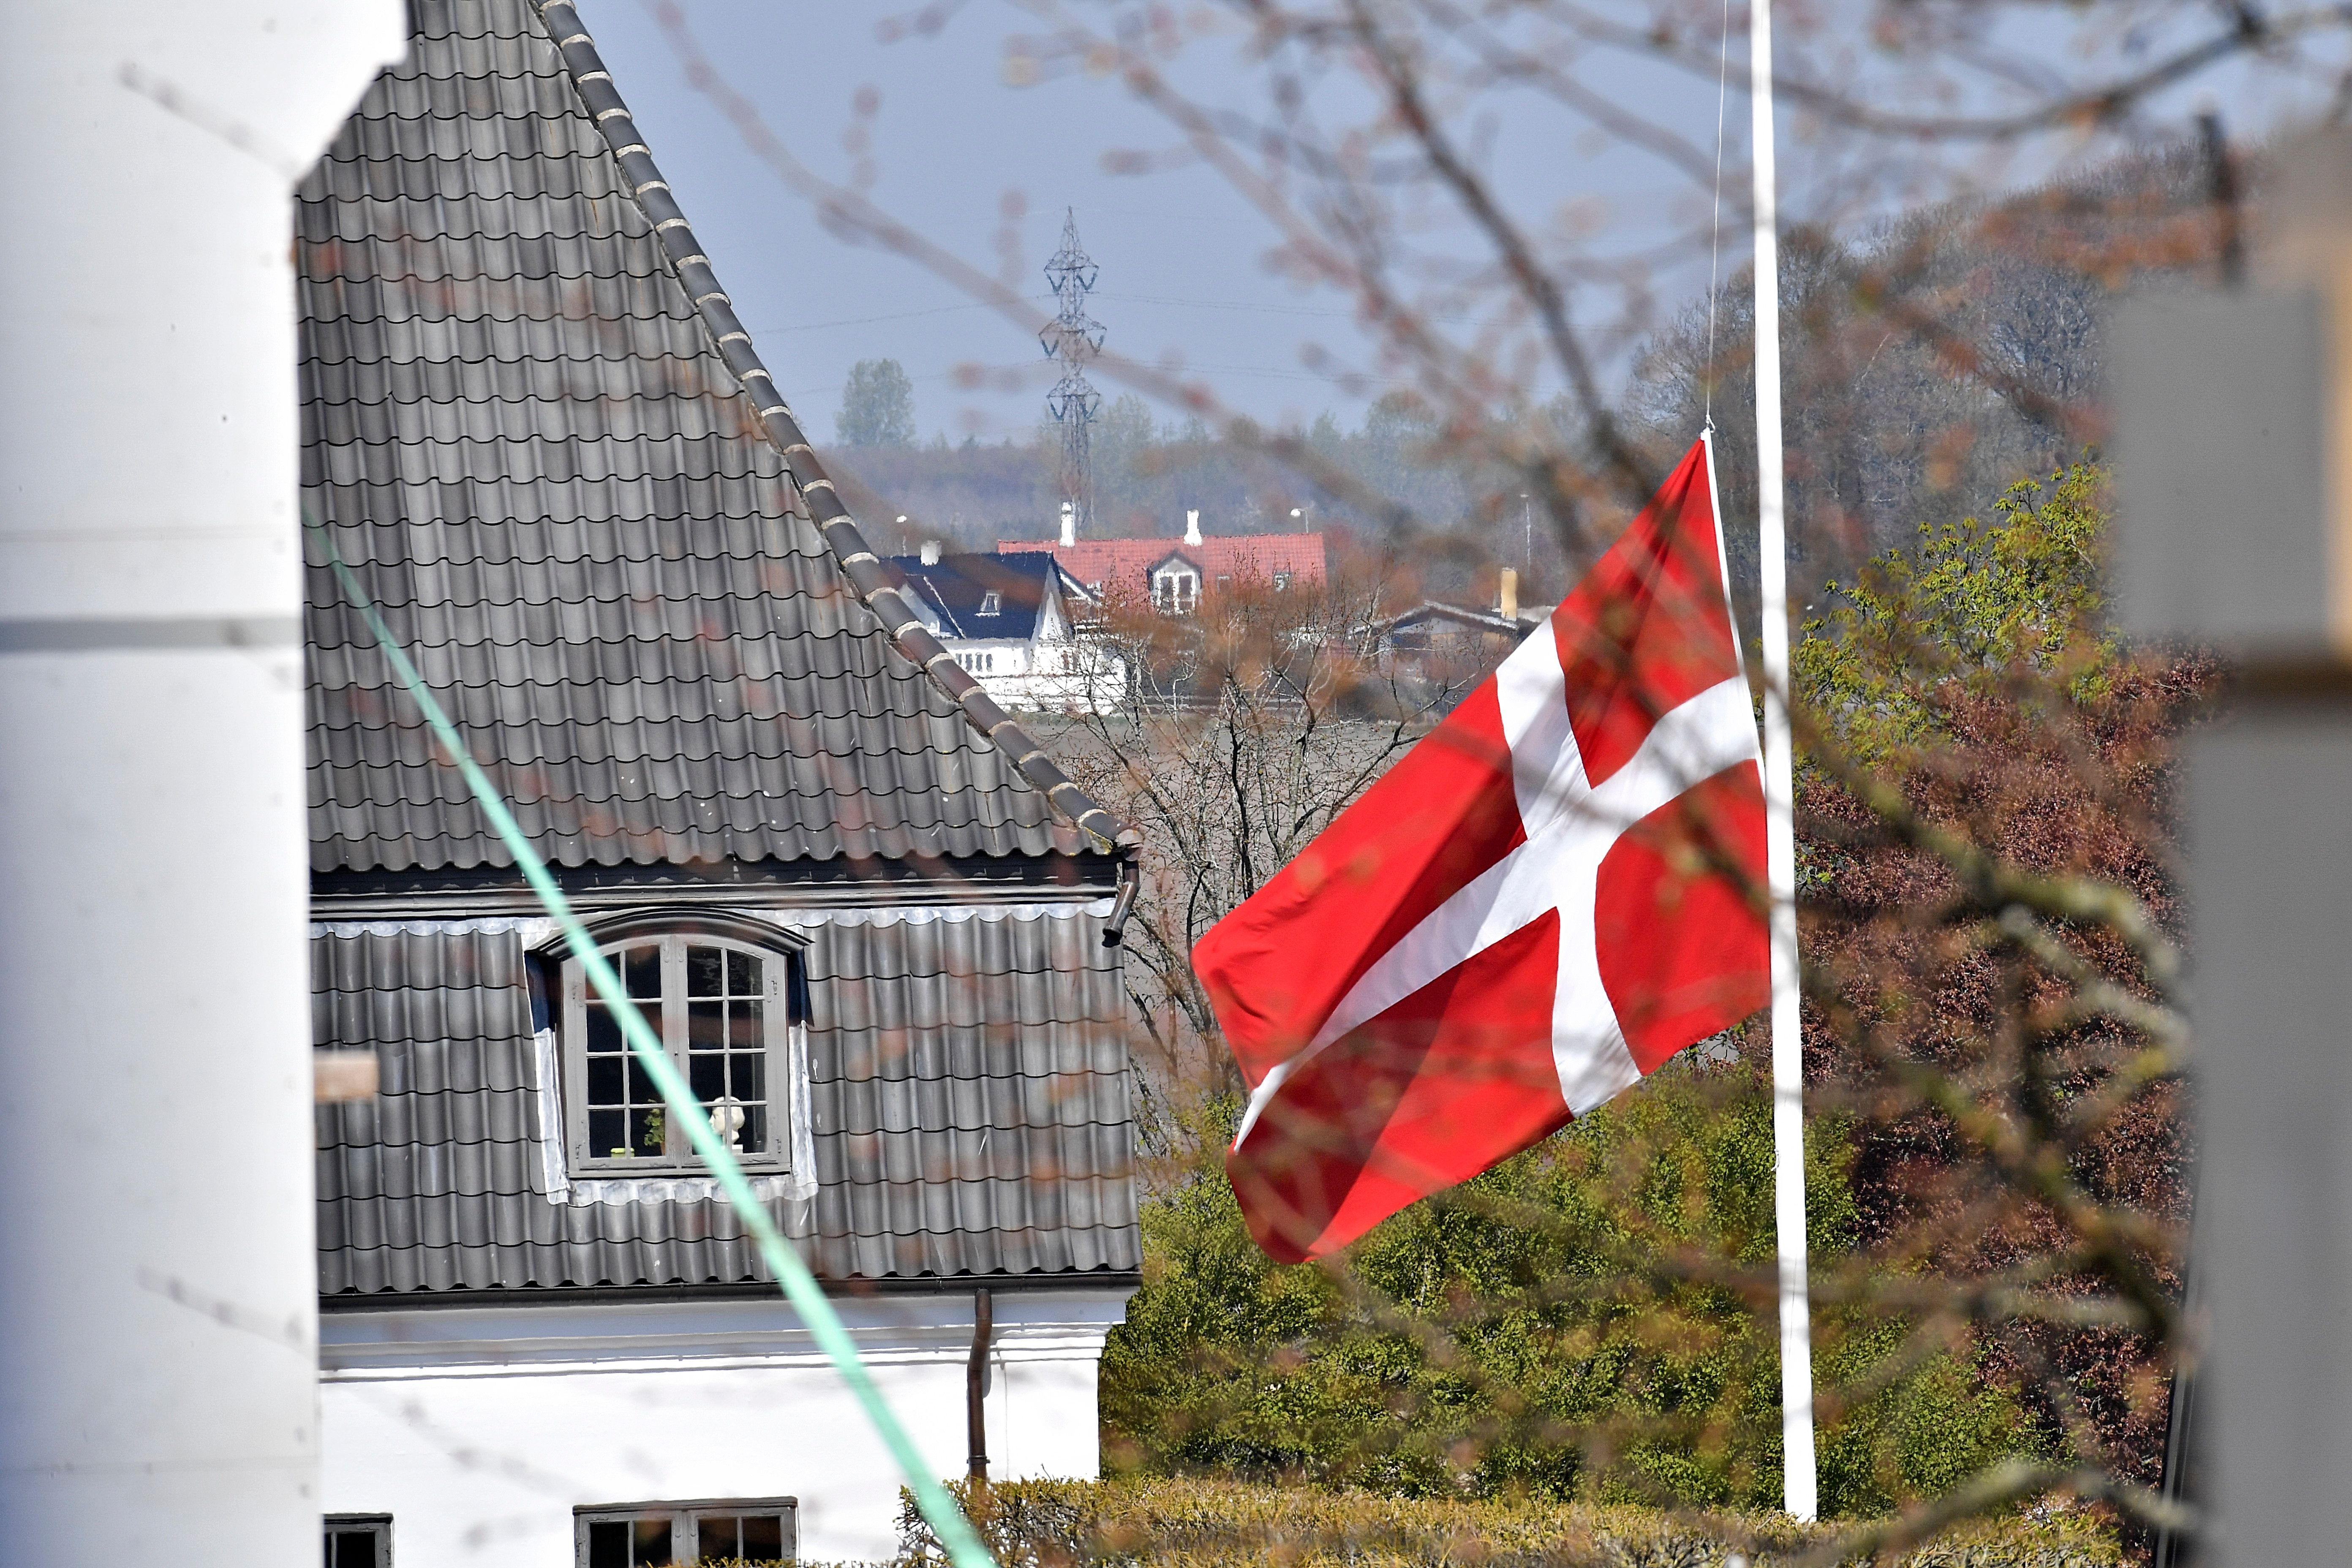 The Danish flag is at half mast at Hojvangskolen in Aarhus, Denmark, the school attended by the children of Danish billionaire and owner of fashion business Bestseller Anders Holch Povelsen.